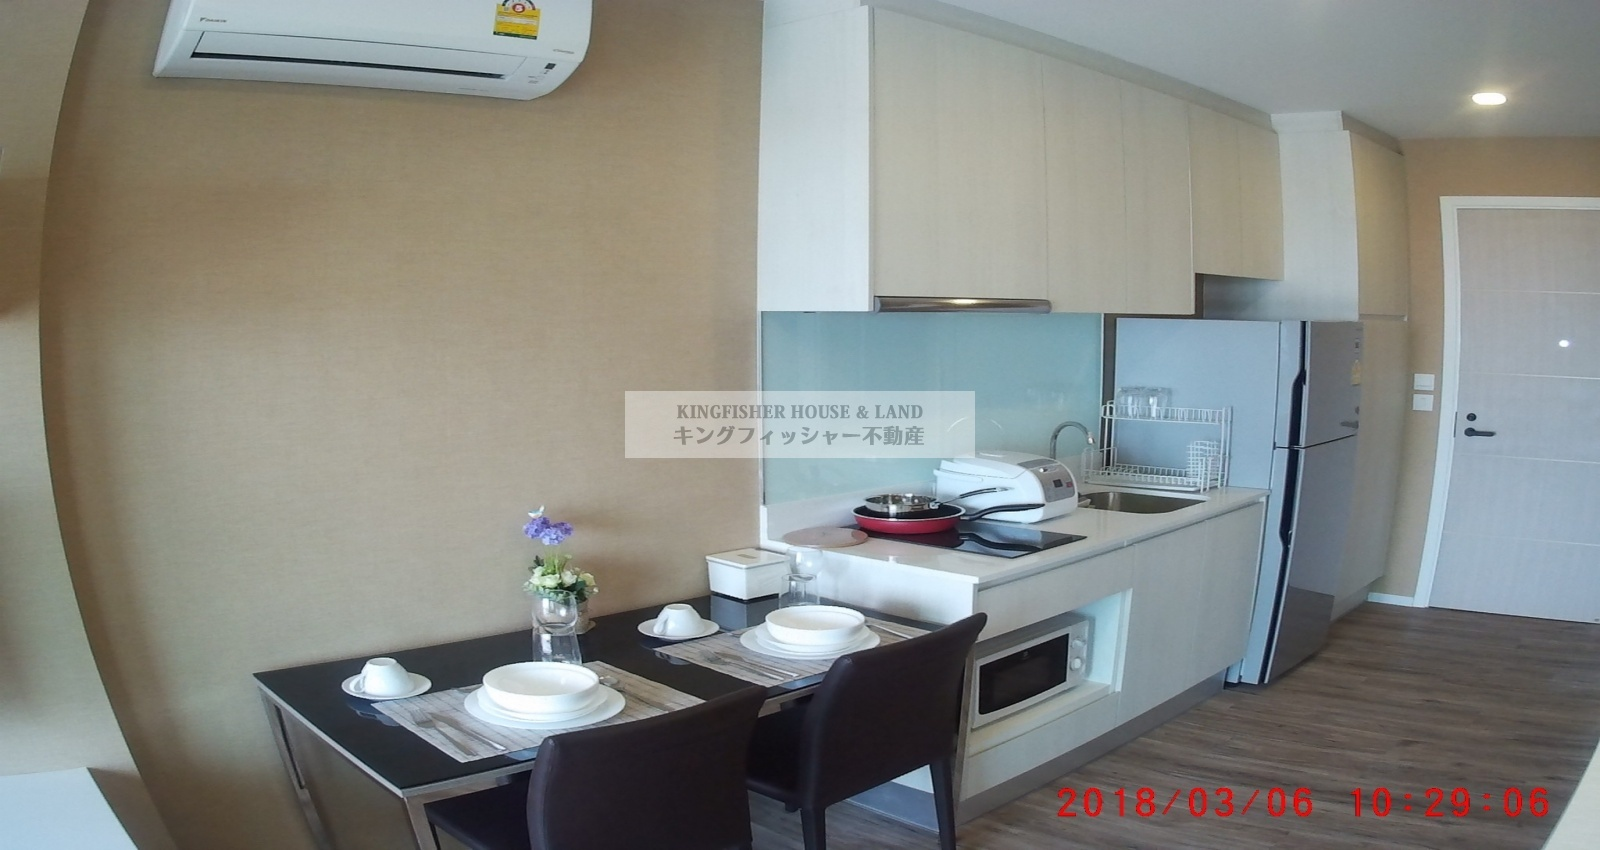 1 Bedrooms, Condominium, For Rent, 1 Bathrooms, Listing ID 1212, Sriracha, Thailand, 20110,